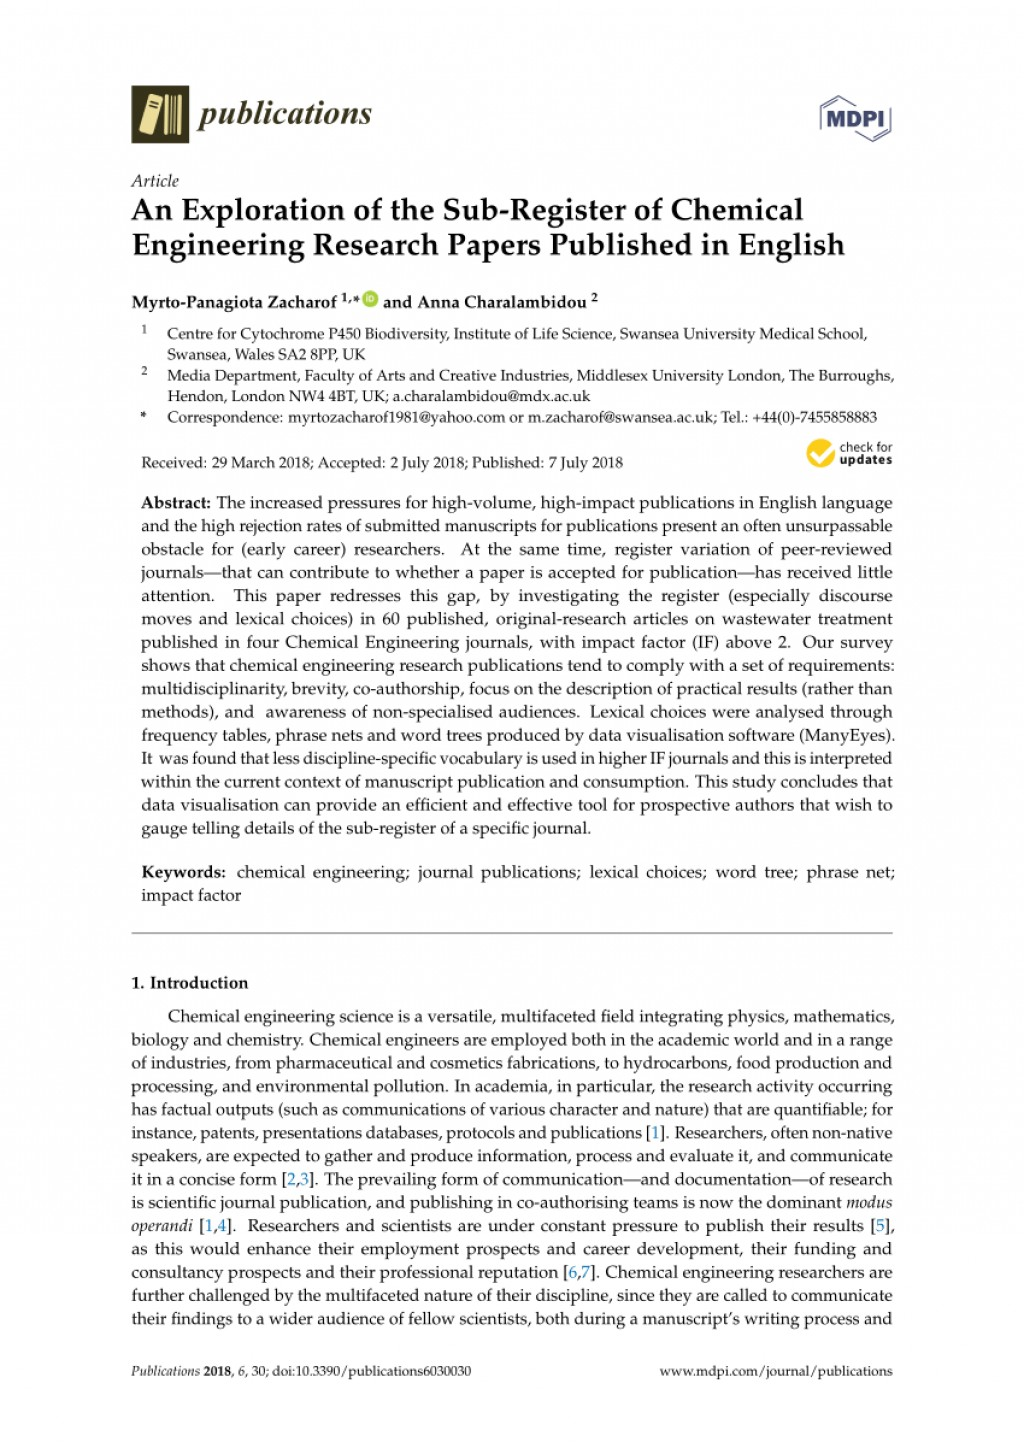 005 Research Paper How To Have Published Stirring A Get An Academic India Large